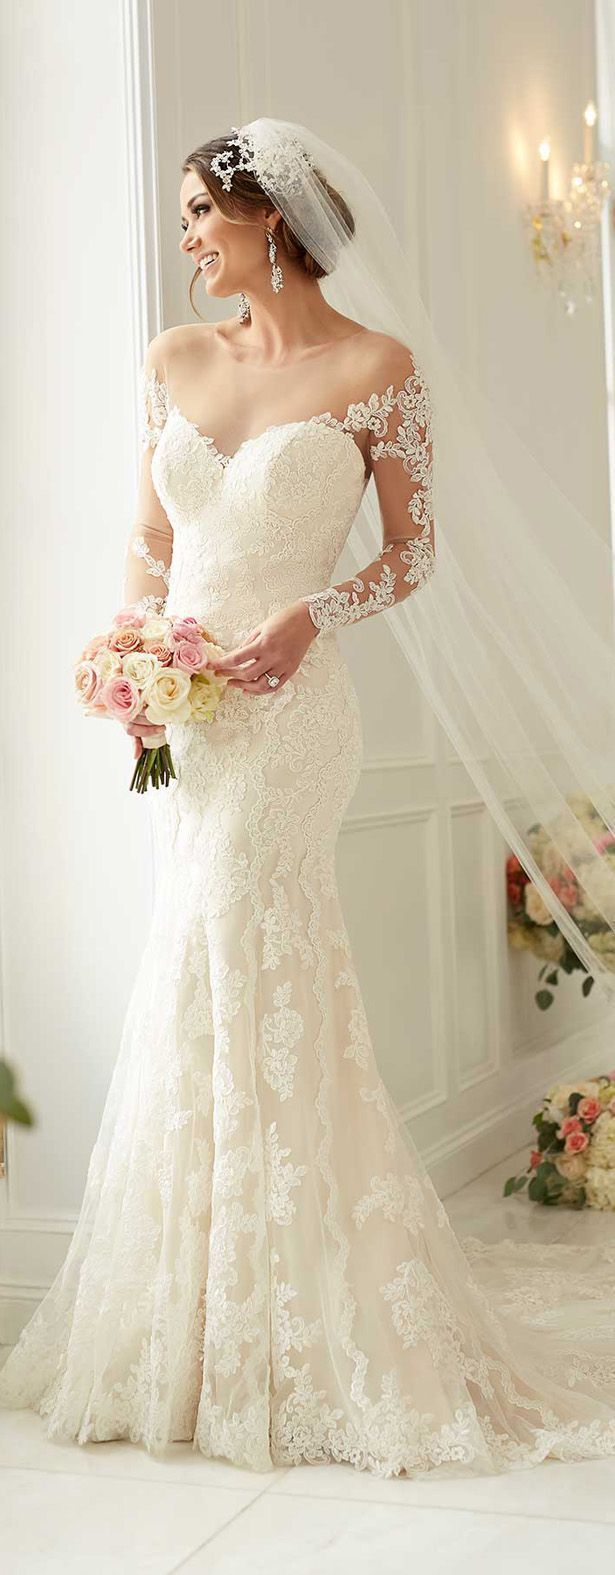 484 best VESTIDOS DE NOVIAS images on Pinterest | Wedding frocks ...